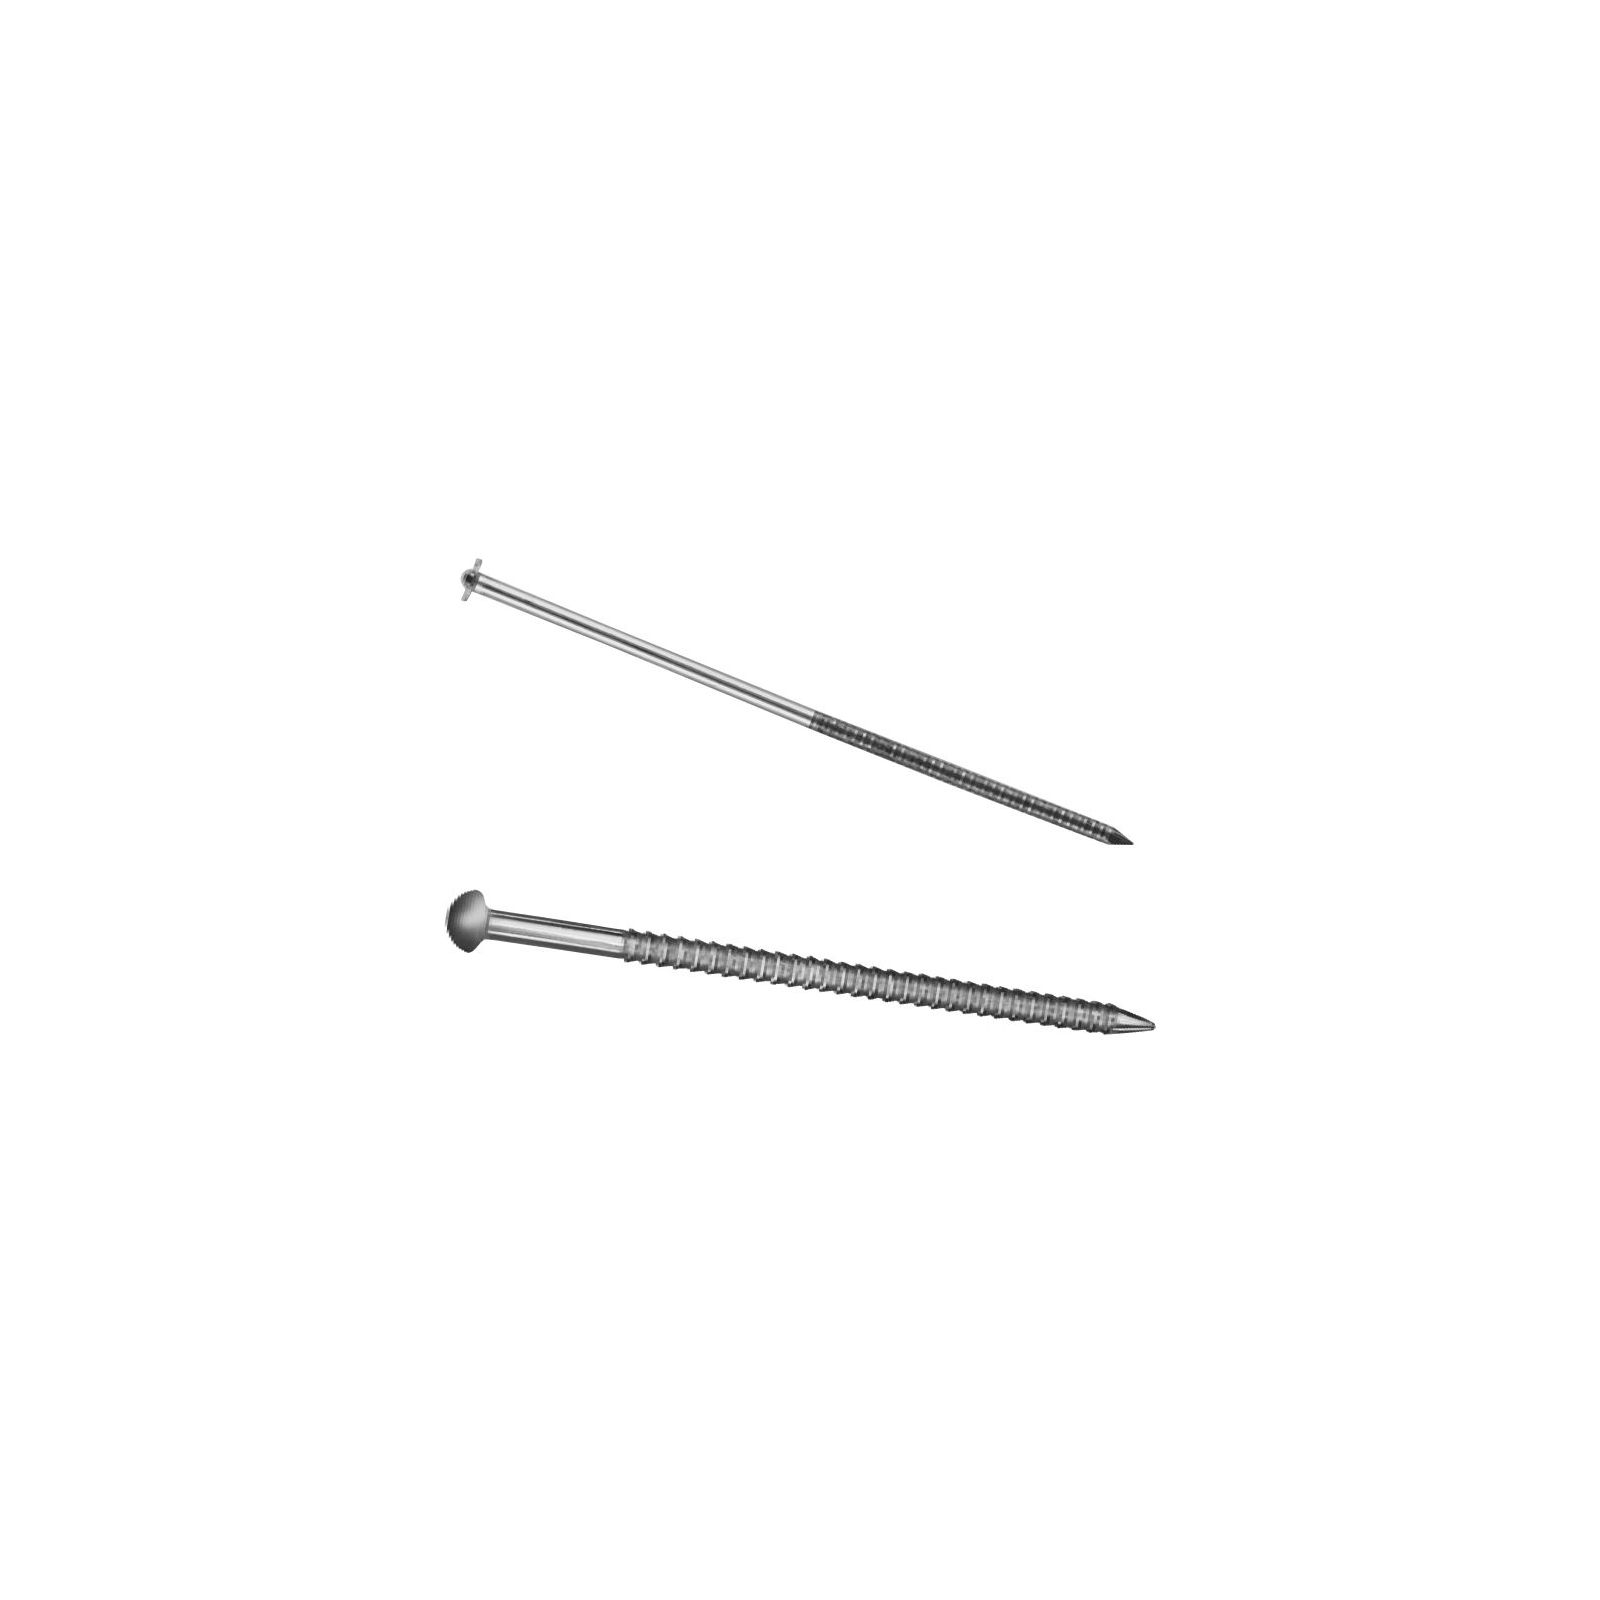 "Duro Dyne 26002 -  PN-114 Spotter Pins for 1"" Duct Liner, 1-1 1/4"""